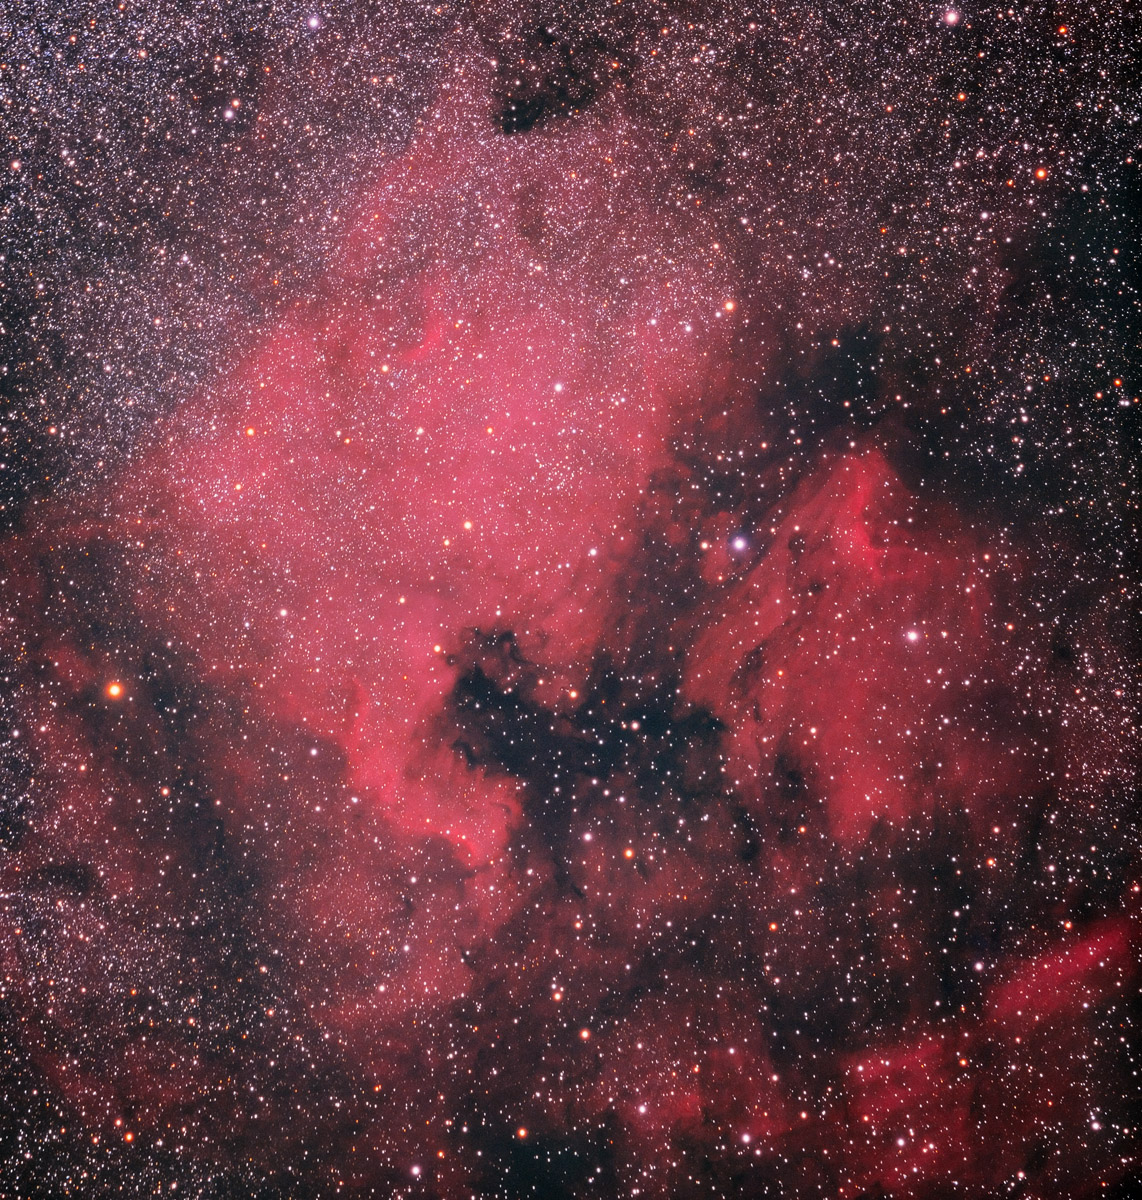 NGC 7000 with Kodak E200 Film